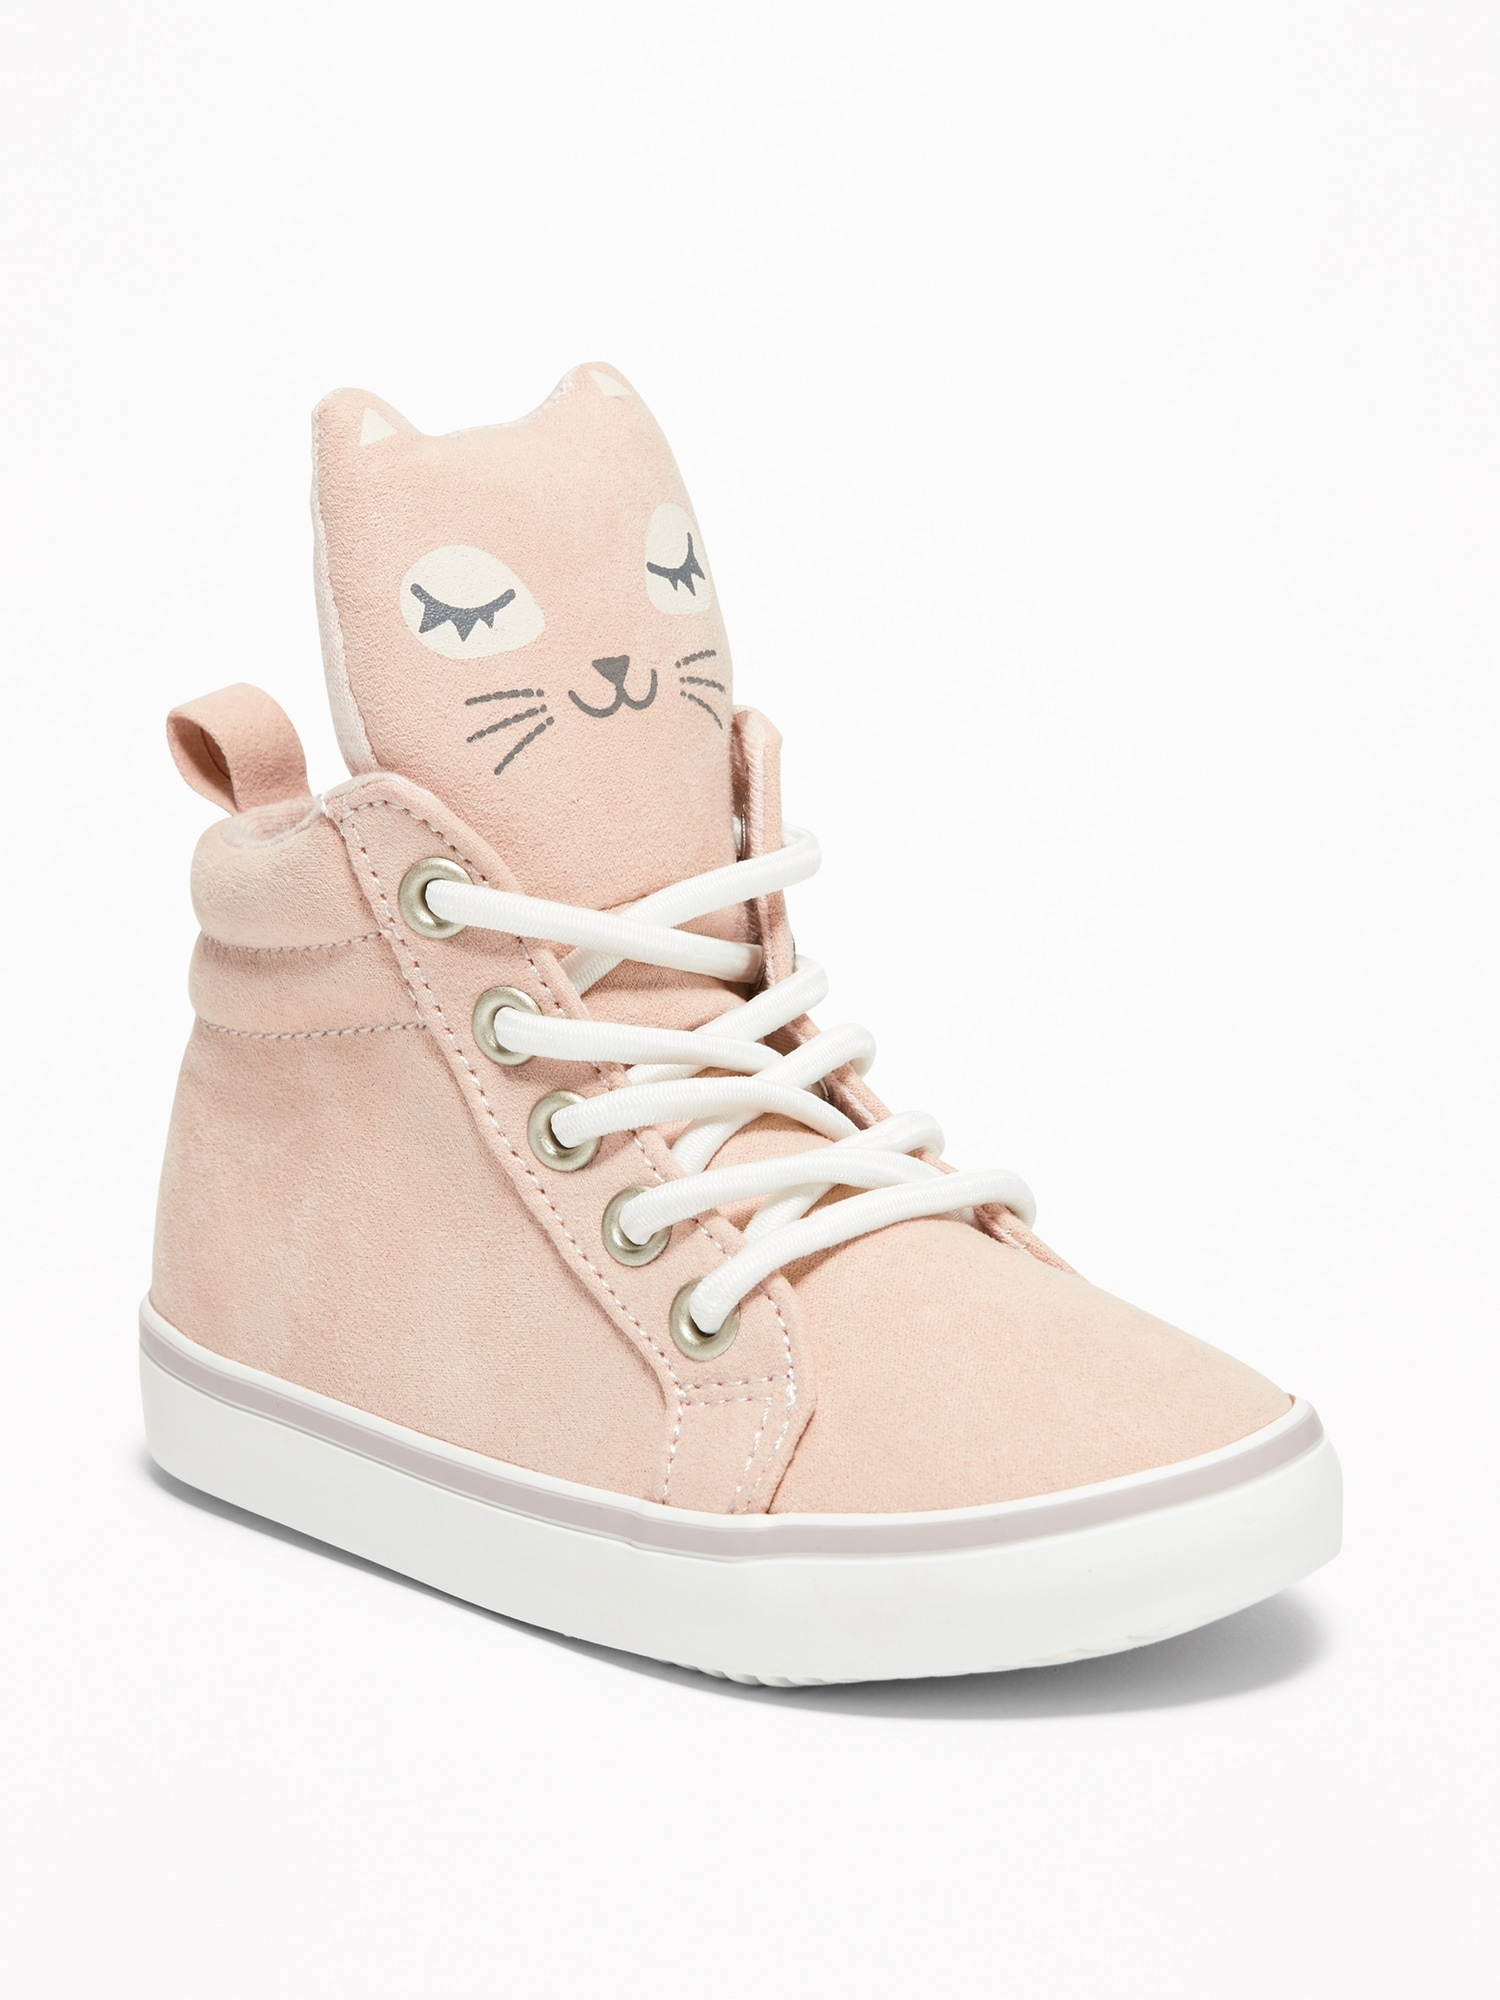 watch cbc9e 5c0e0 Sueded Kitty High-Top Sneakers For Toddler Girls